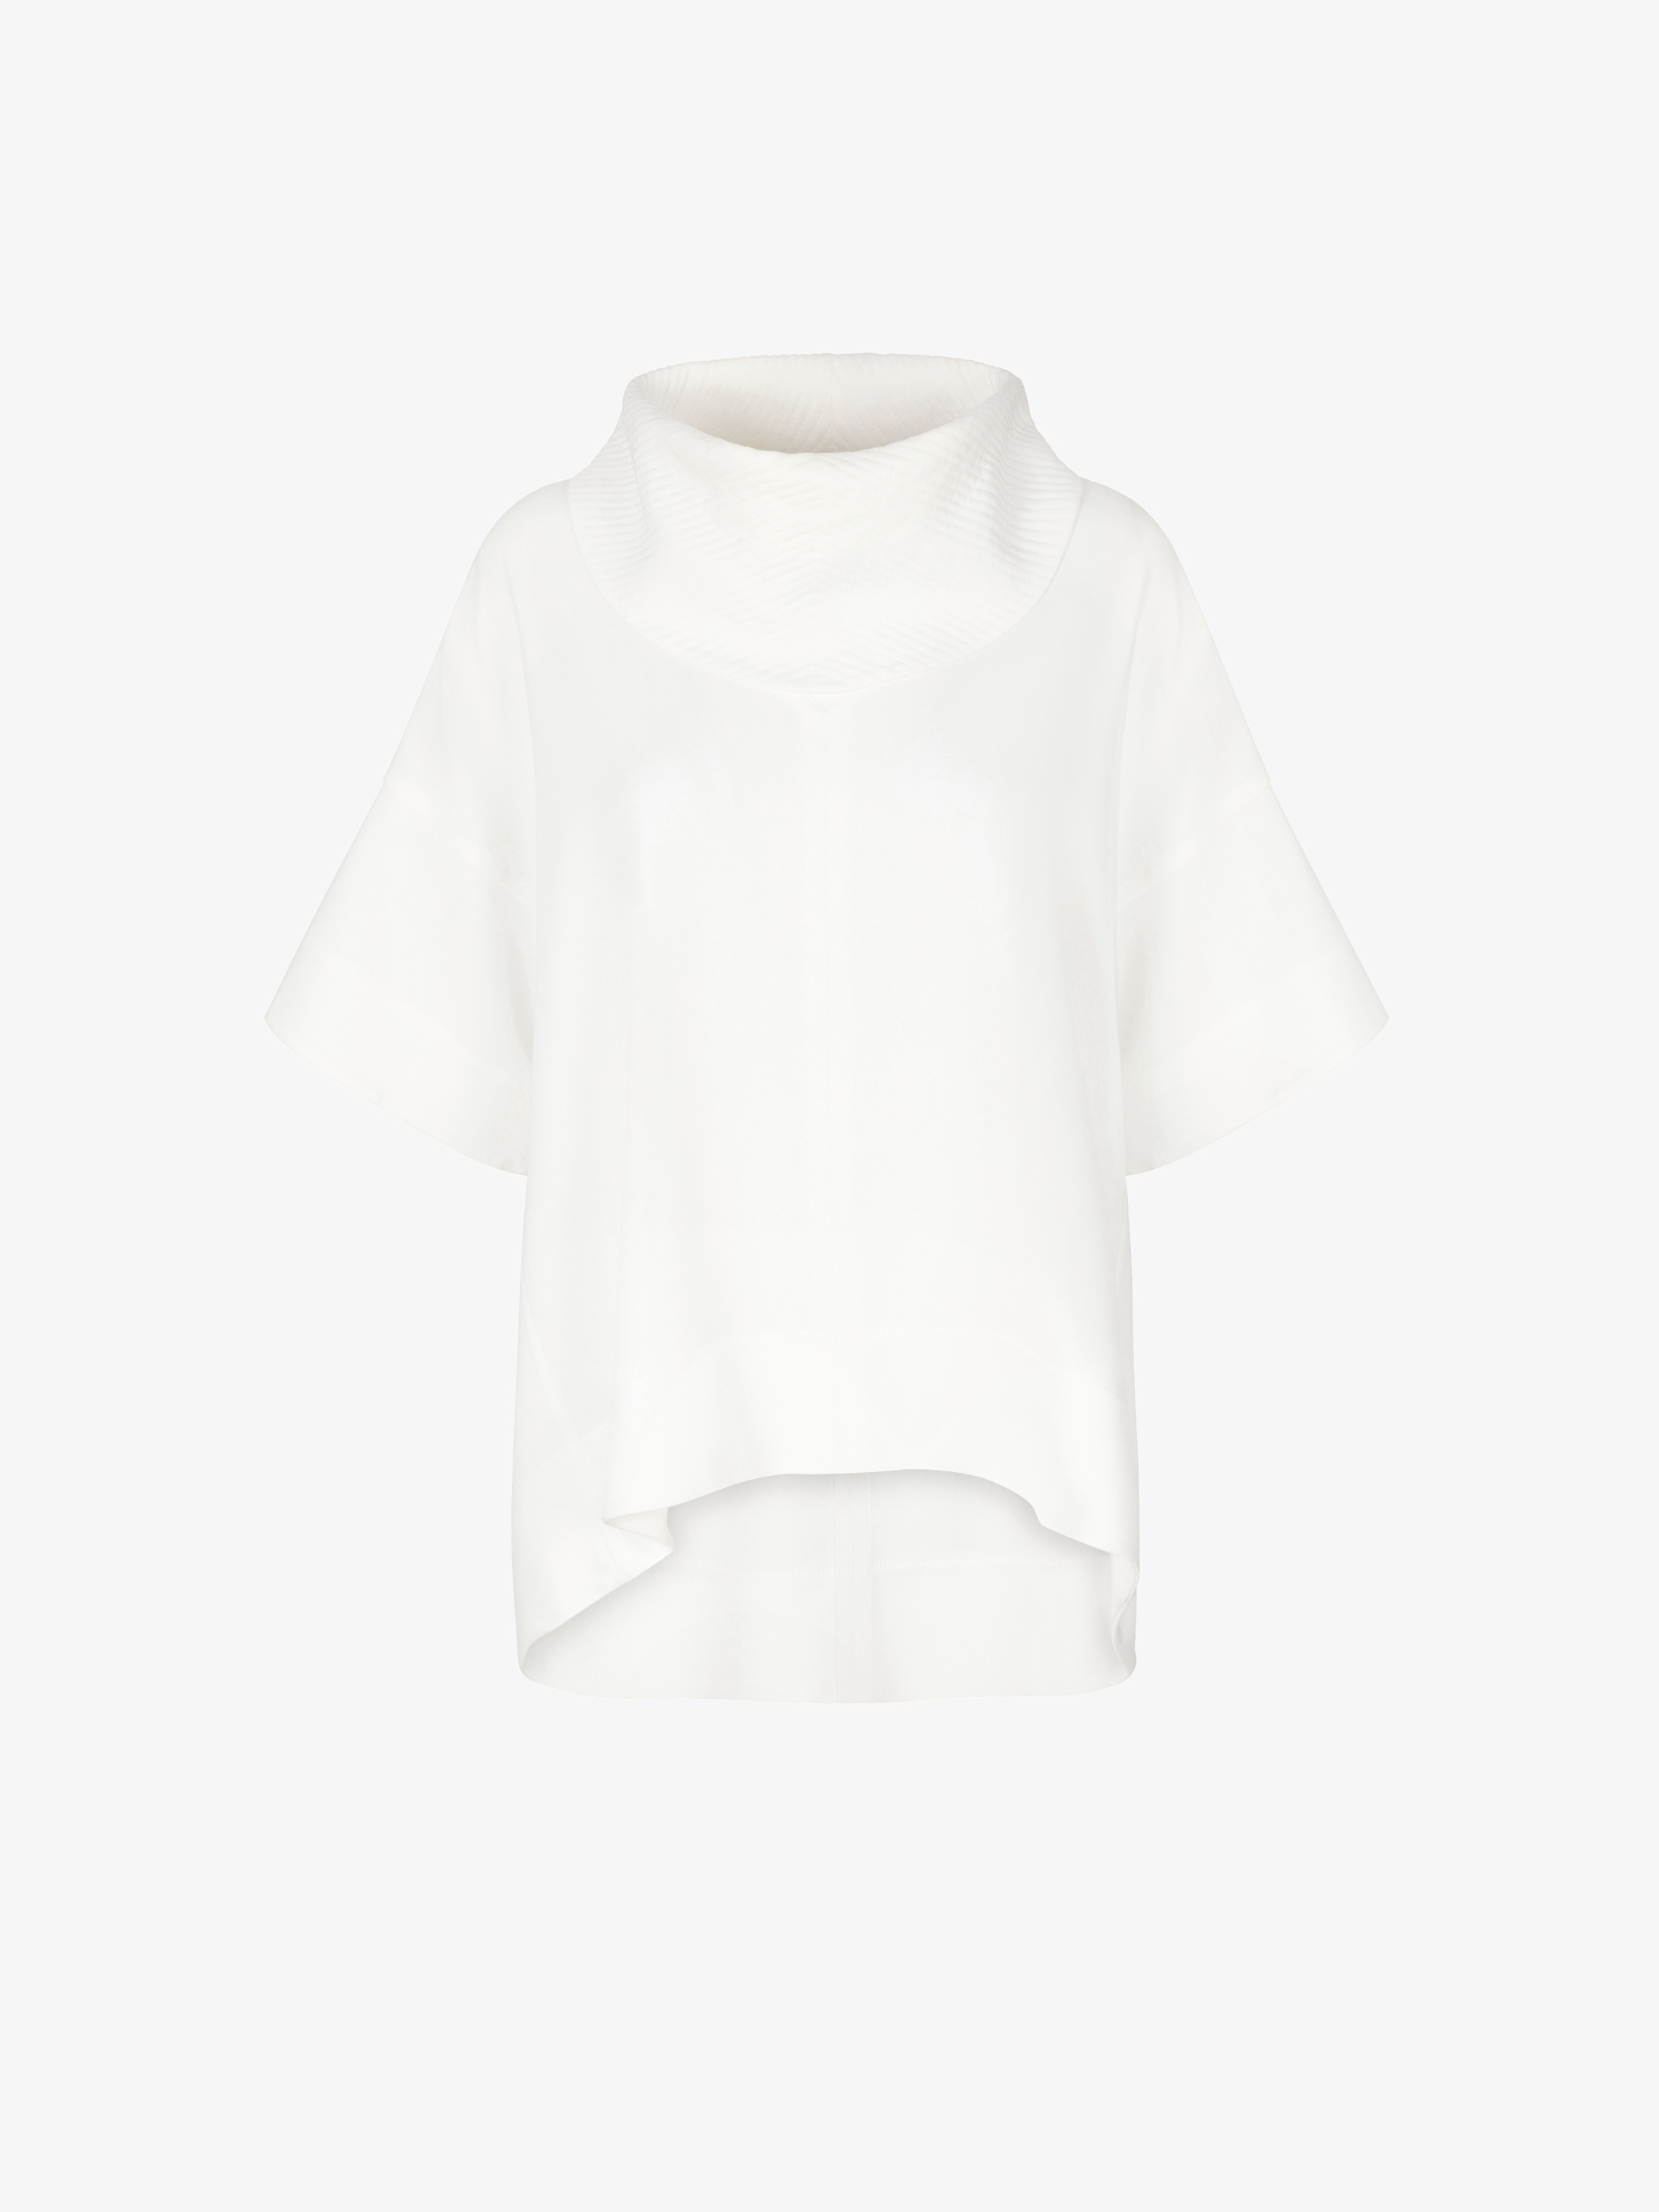 Oversized topstitched collar top